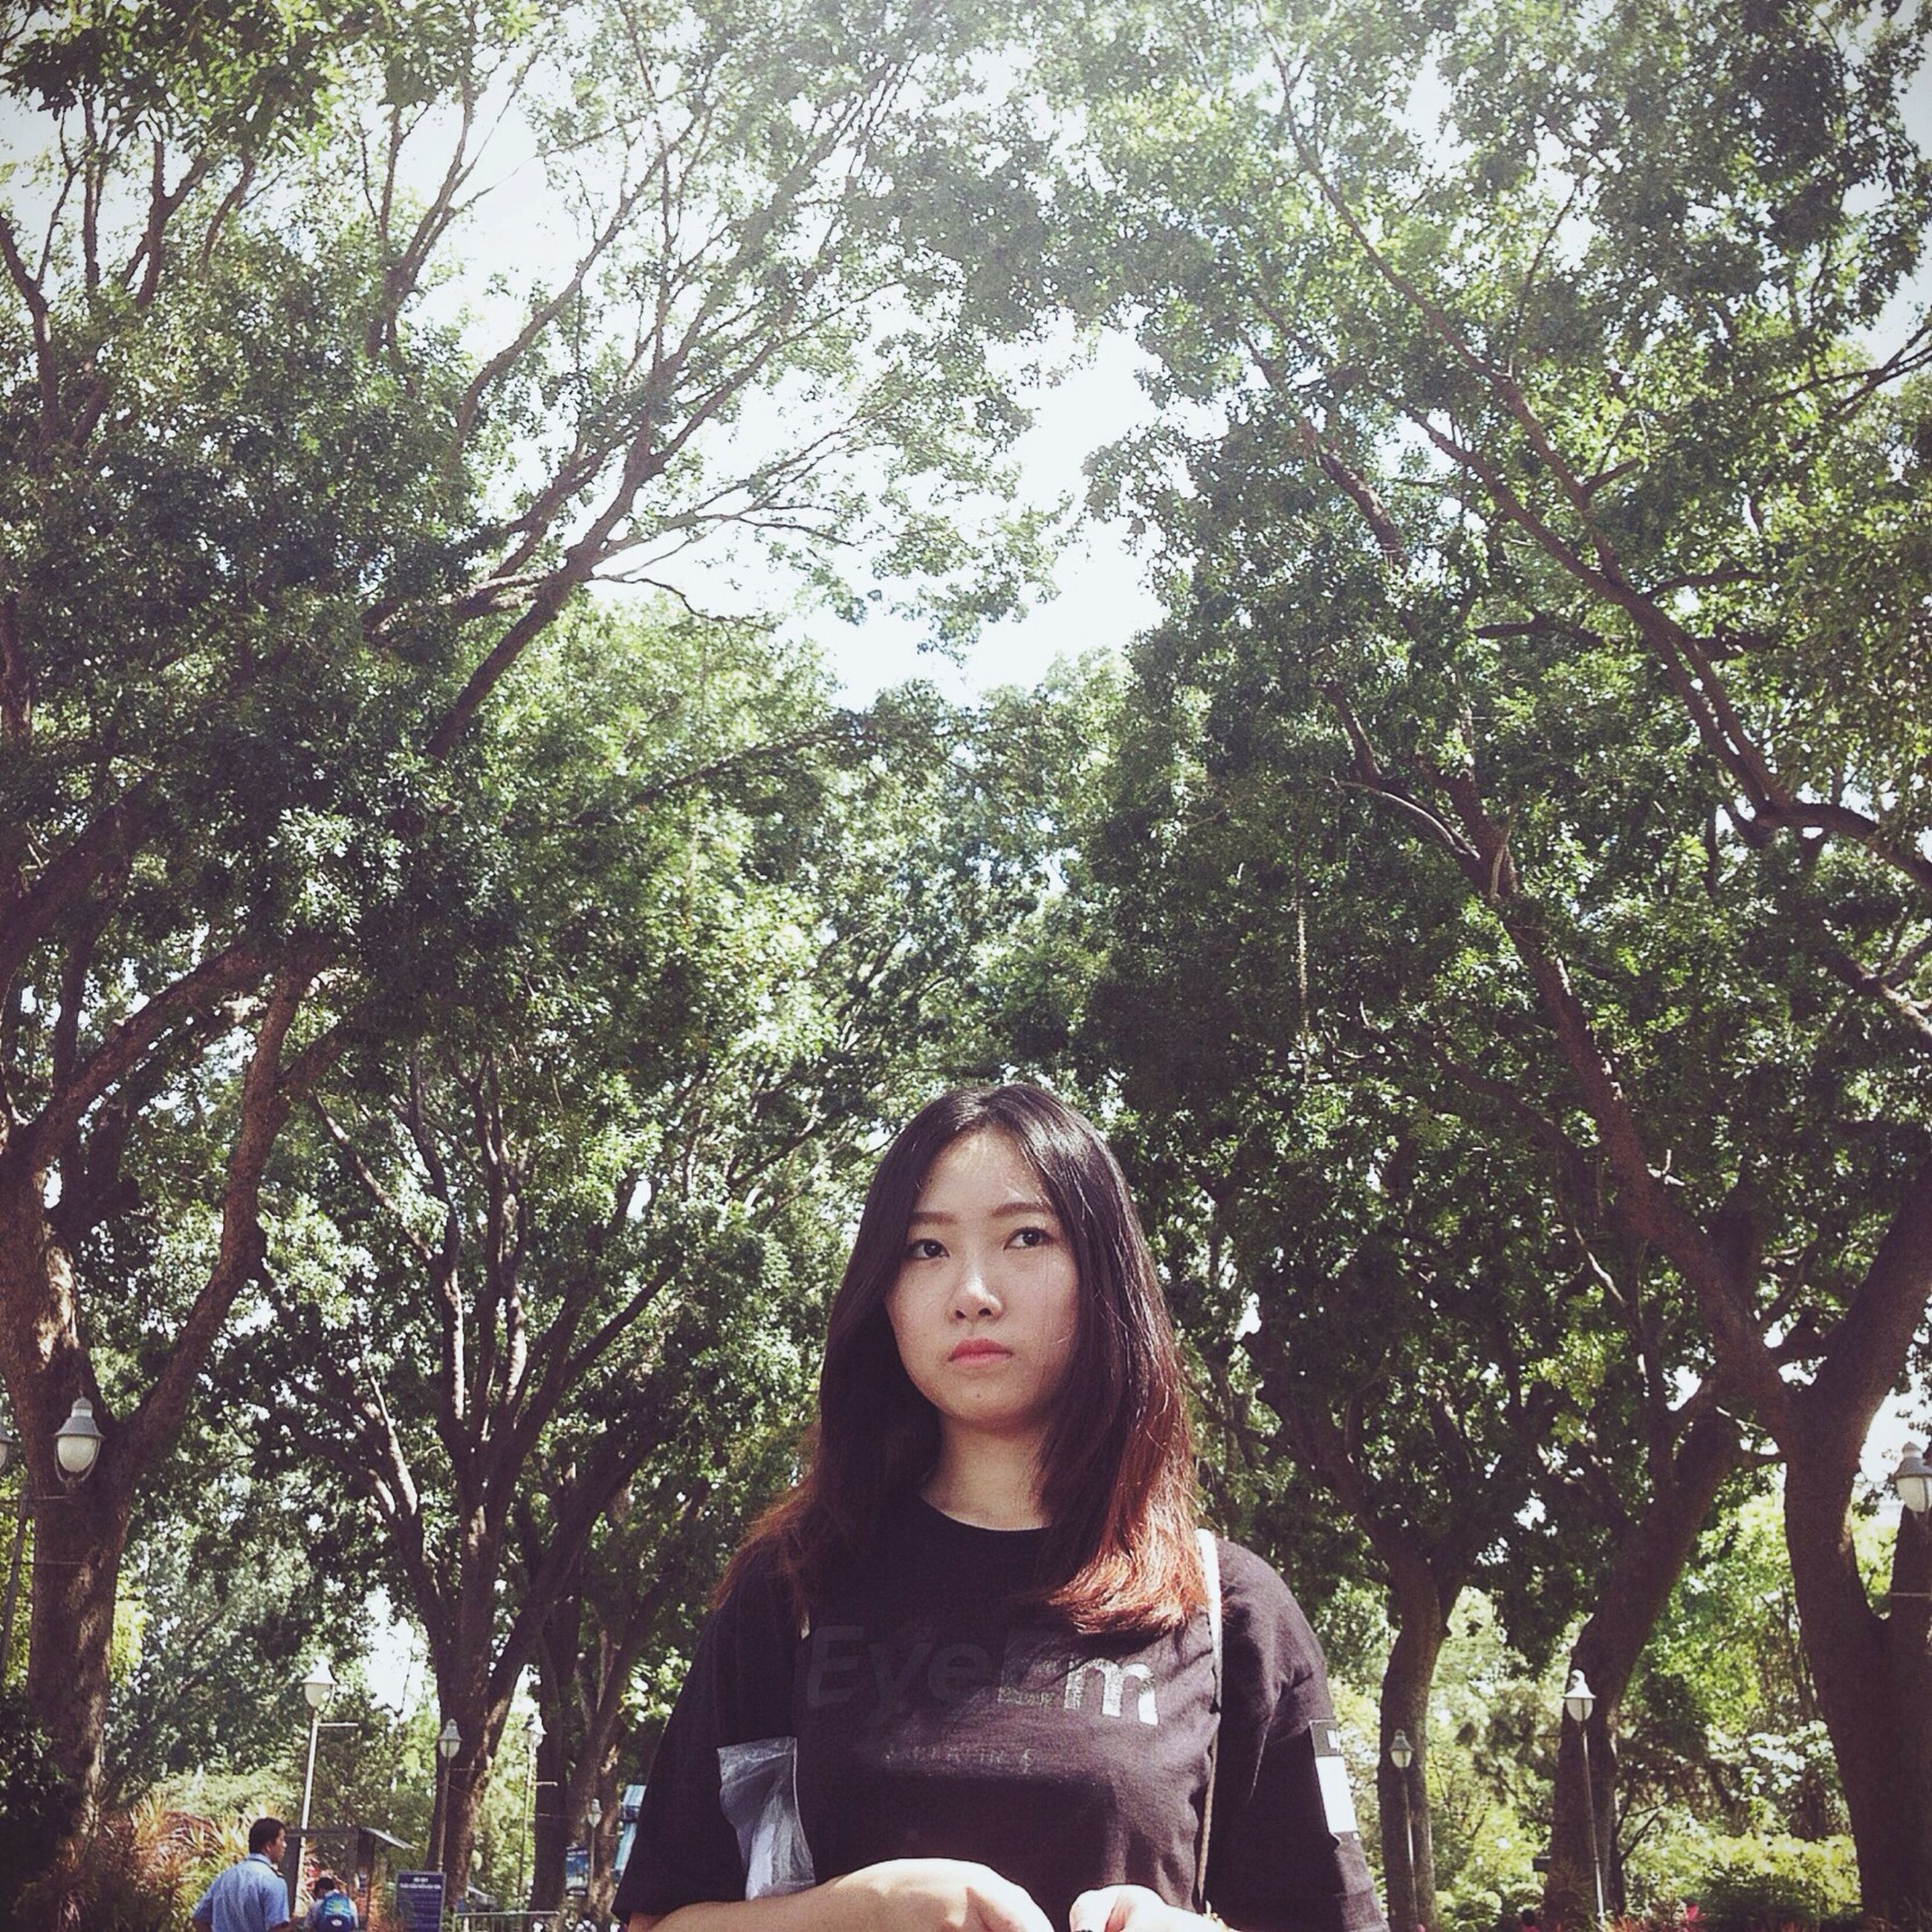 tree, lifestyles, young adult, leisure activity, growth, casual clothing, low angle view, looking at camera, young women, nature, front view, park - man made space, portrait, person, day, branch, outdoors, standing